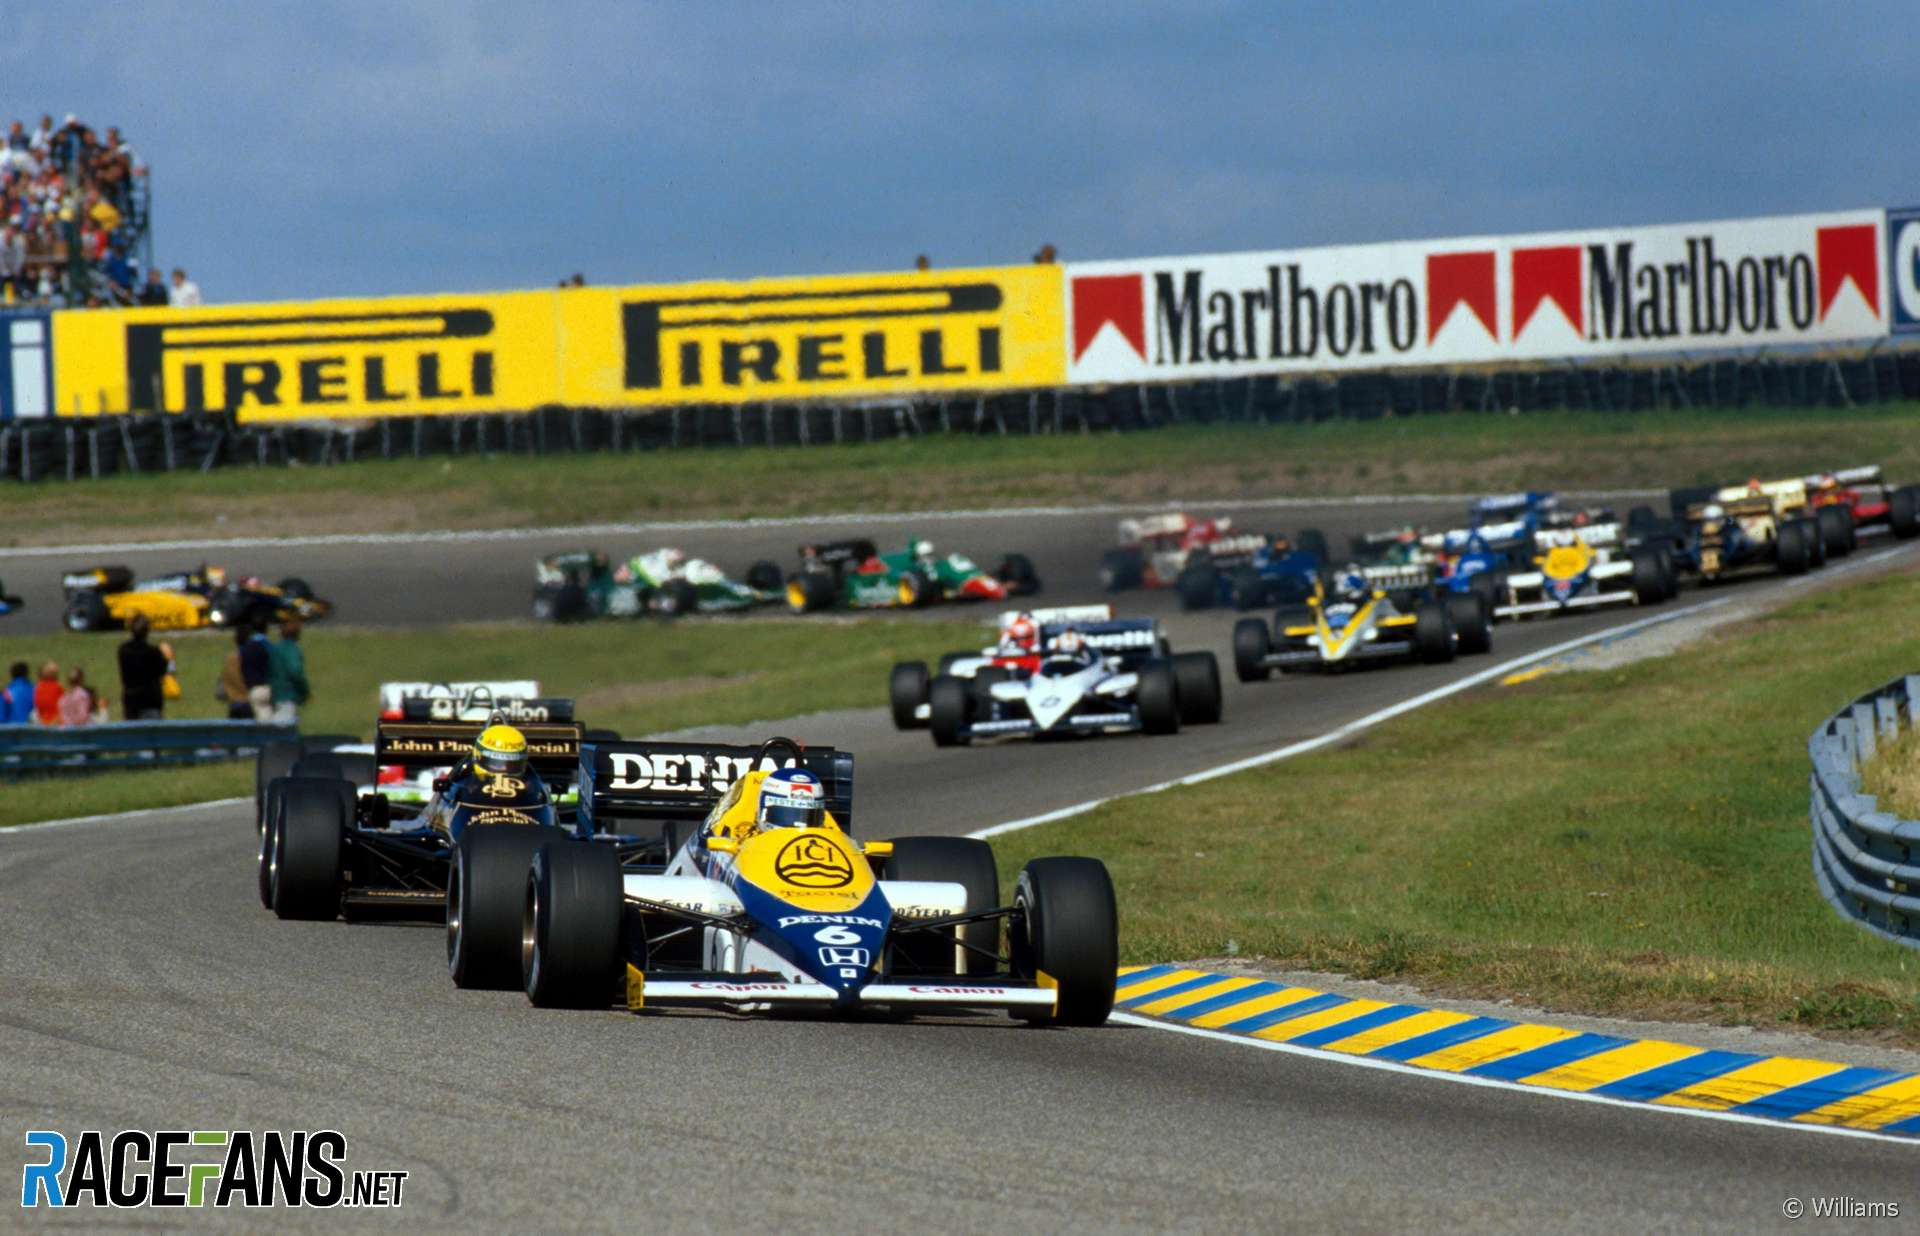 Dutch Grand Prix at Zandvoort confirmed on 2020 F1 calendar | RaceFans